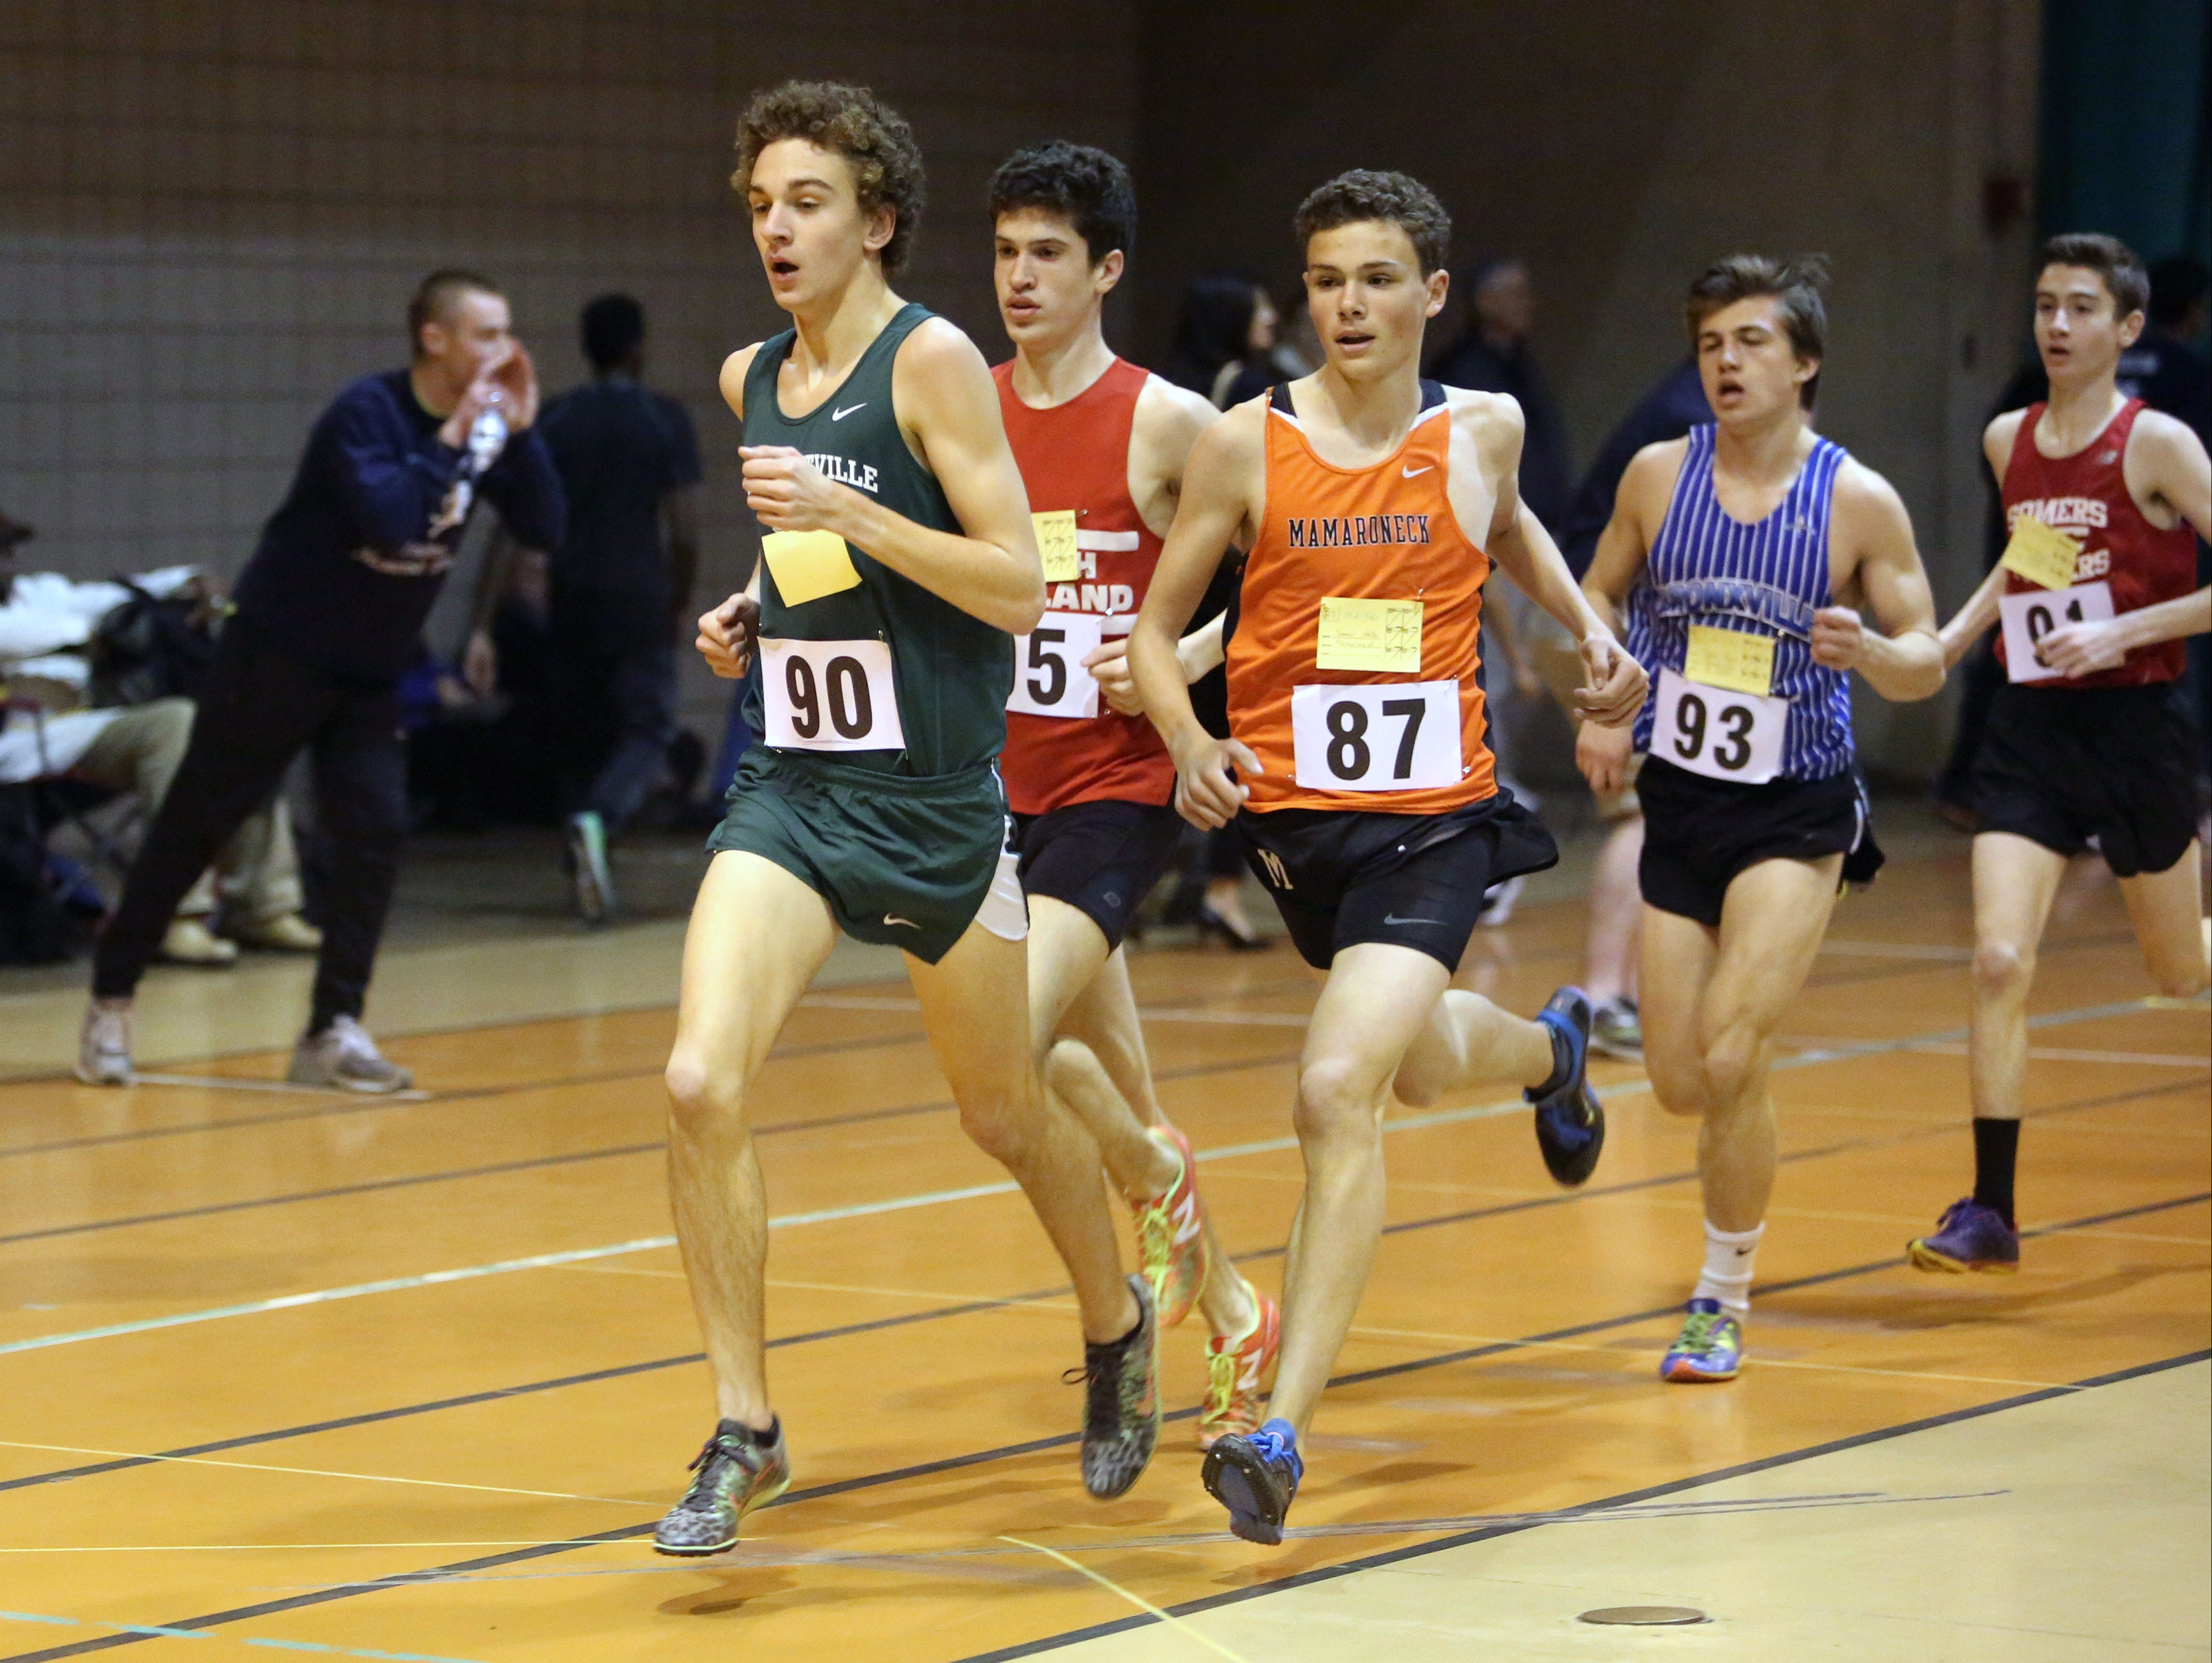 Drew Dorflinger from Pleasantville High School, left, won the boys 3000 invitational during the Rockland Coaches Invitational indoor track meet, Jan. 6, 2016.